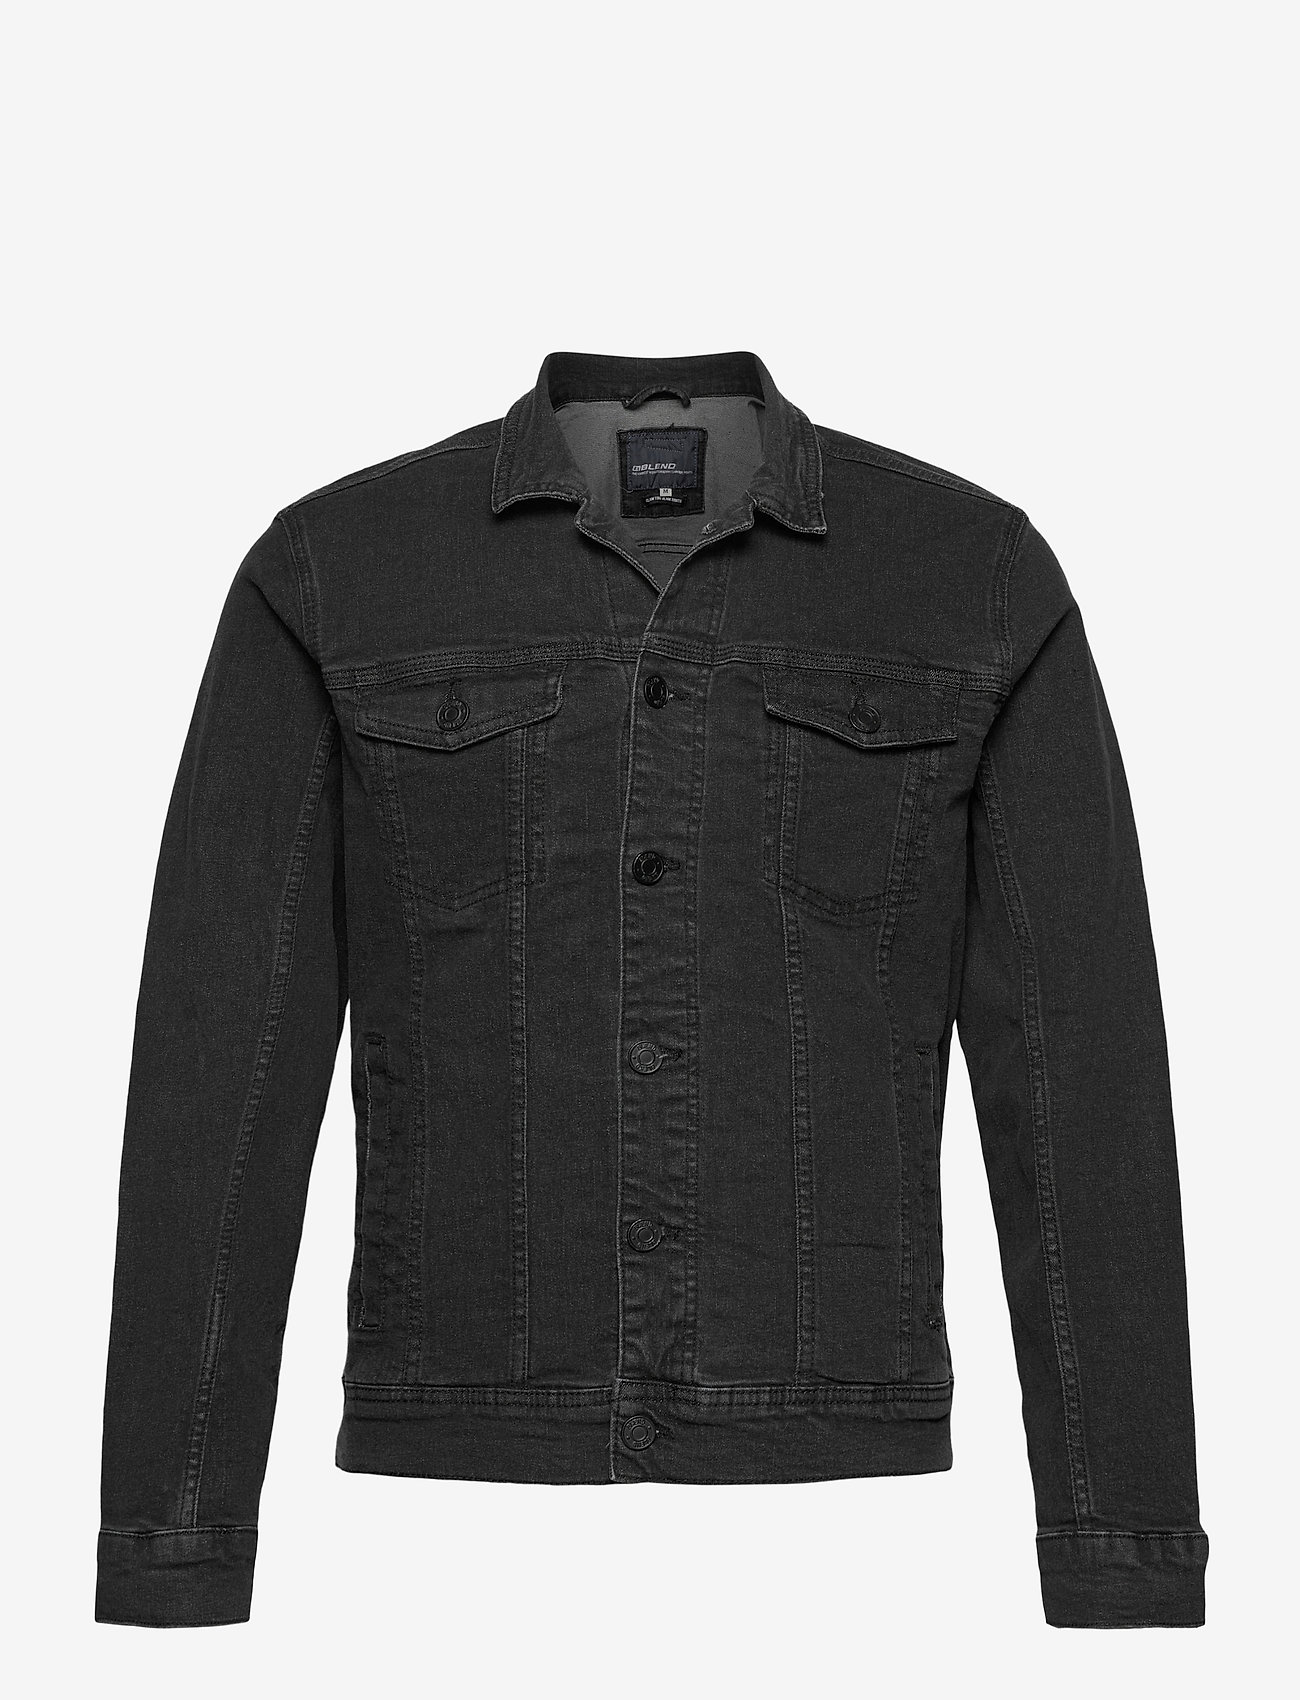 Blend - Outerwear - NOOS - denim jackets - denim black - 0